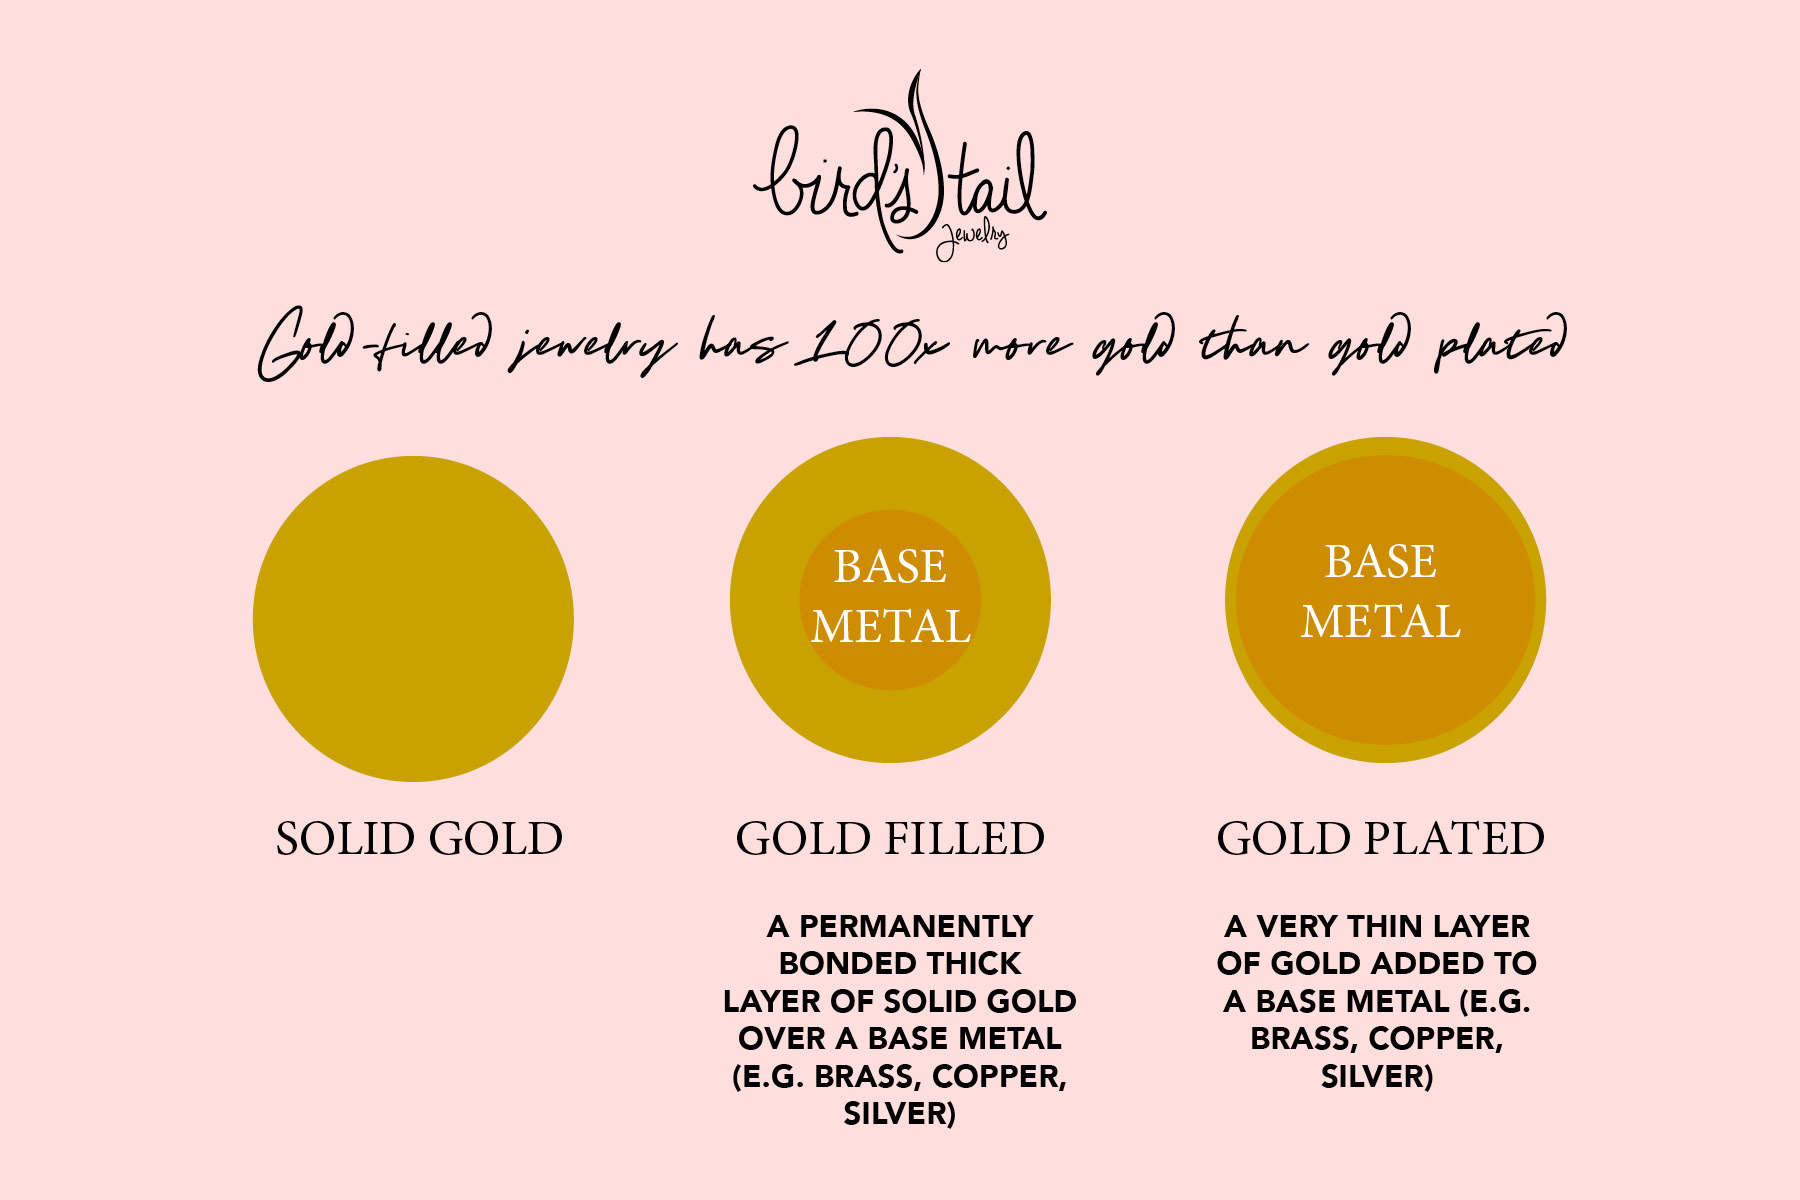 Golf fill vs gold plated graphic.jpg